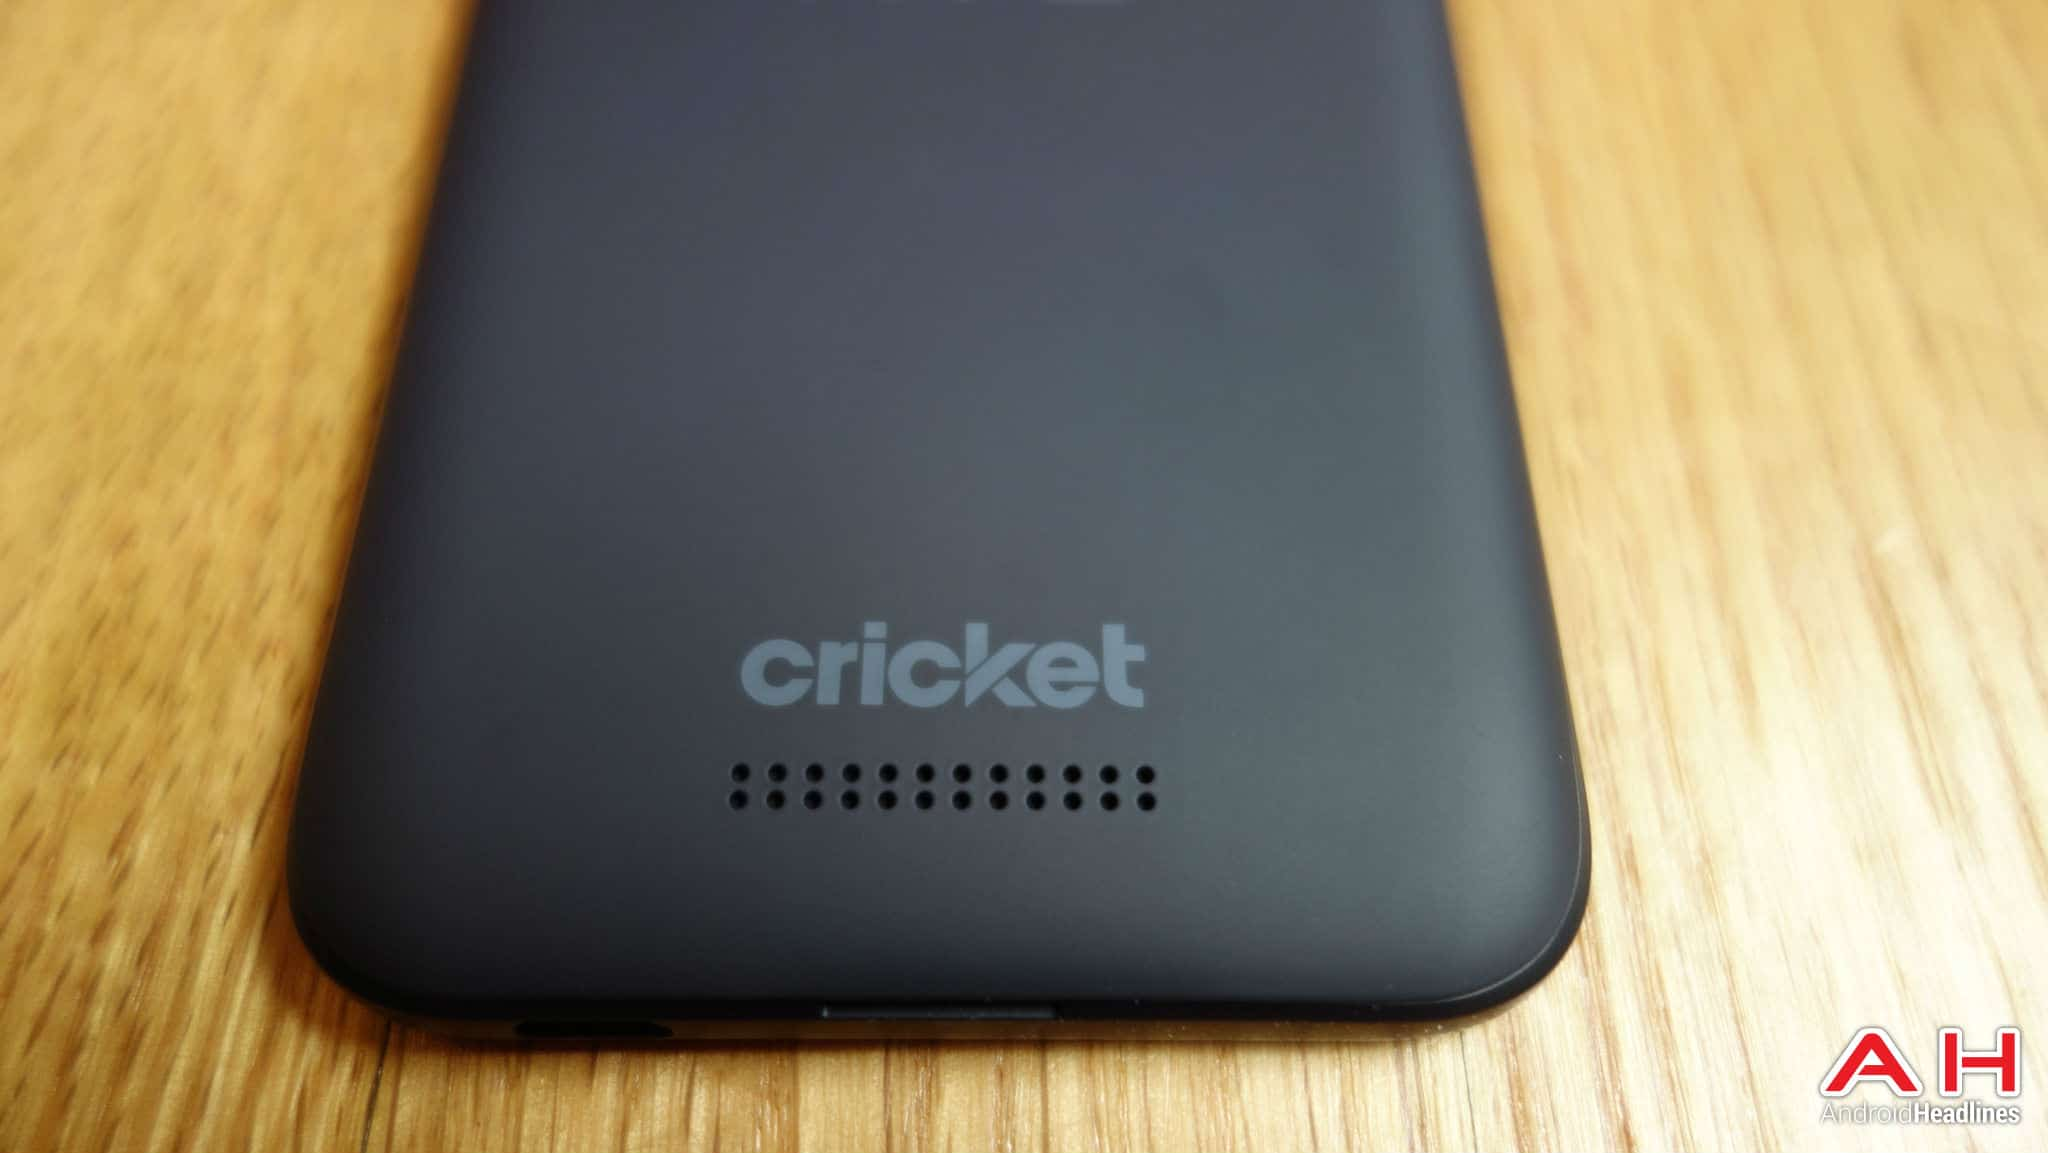 htc desire 510 cricket 3